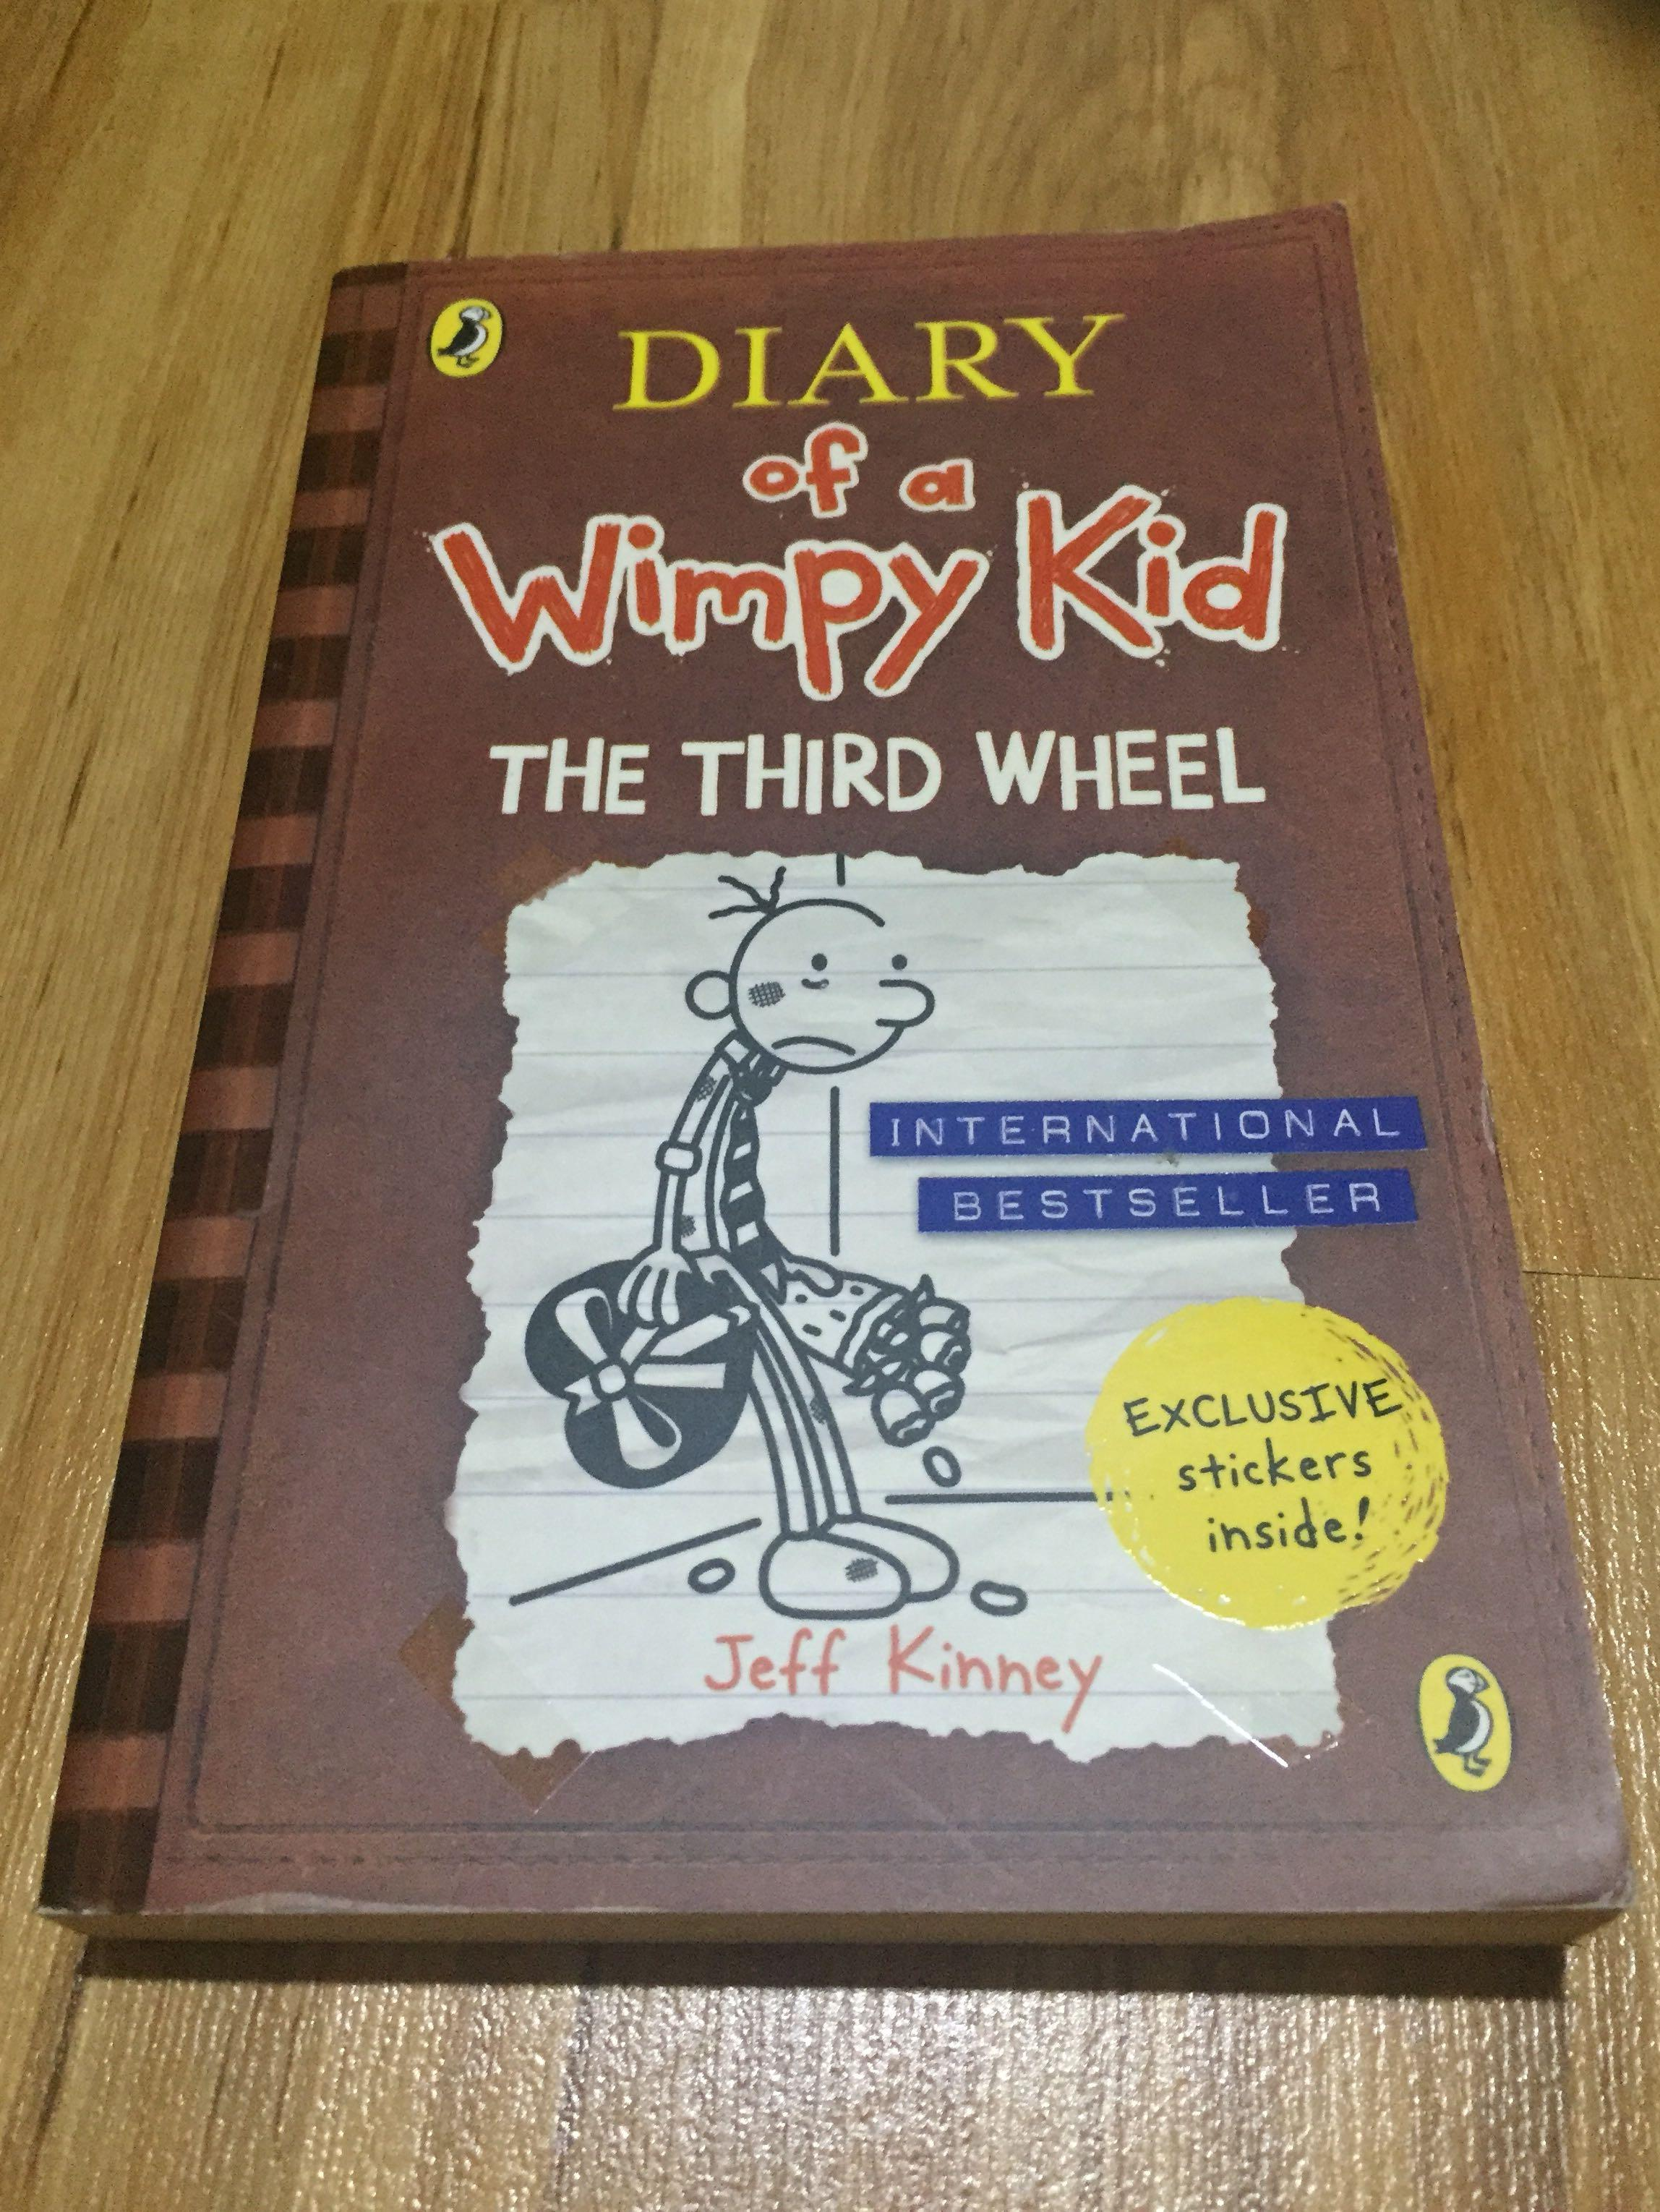 Diary Of A Wimpy Kid The Third Wheel Books Stationery Books On Carousell